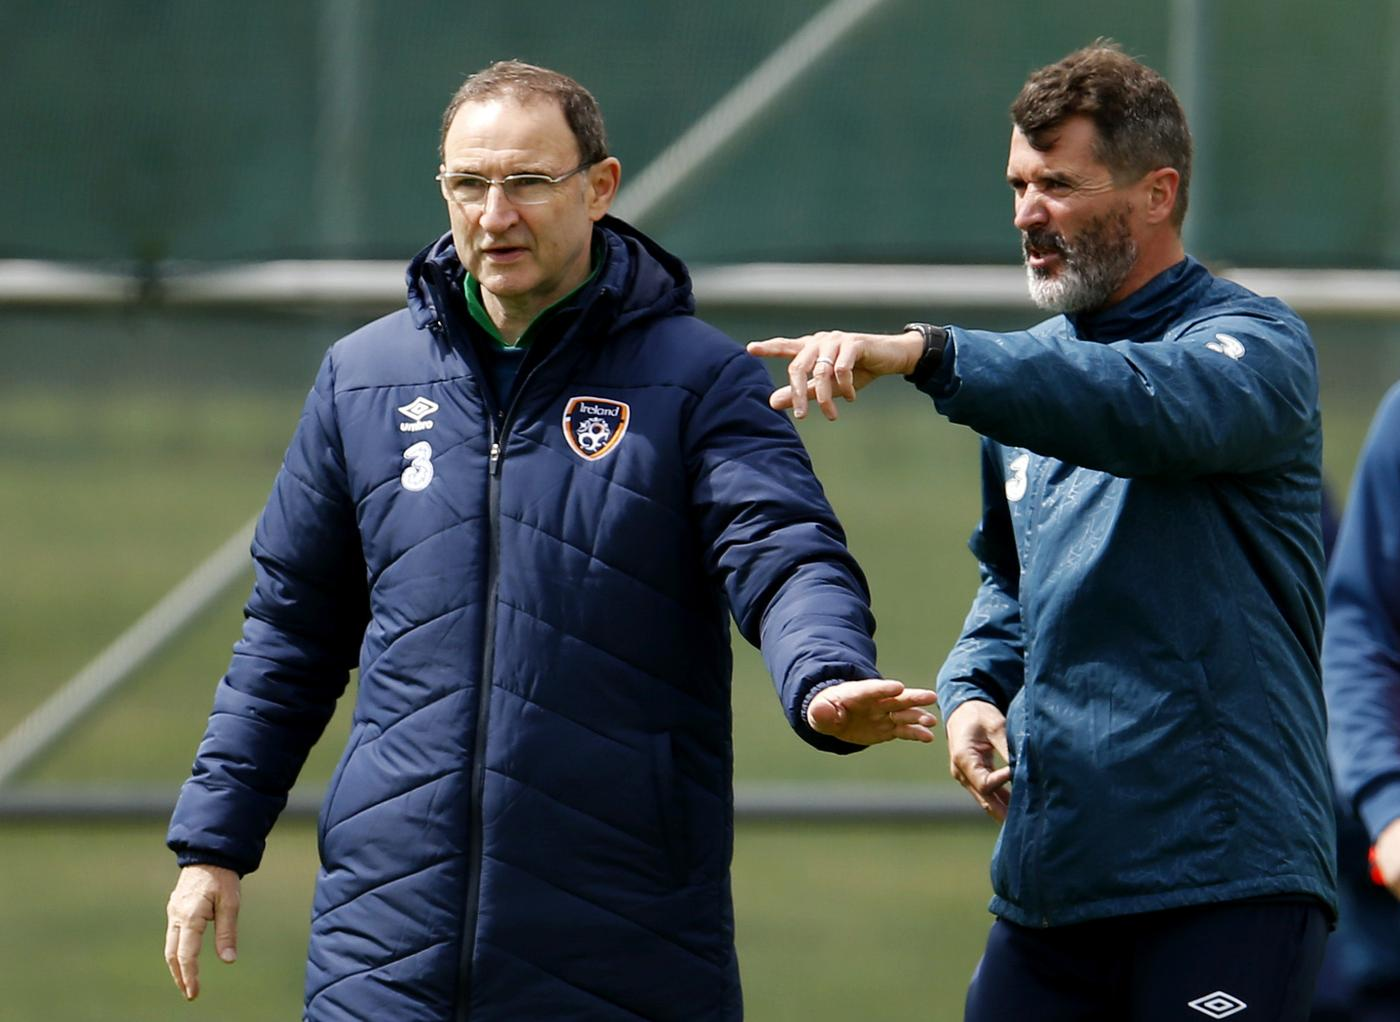 Republic of Ireland manager Martin O'Neill and assistant Roy Keane involved in car crash